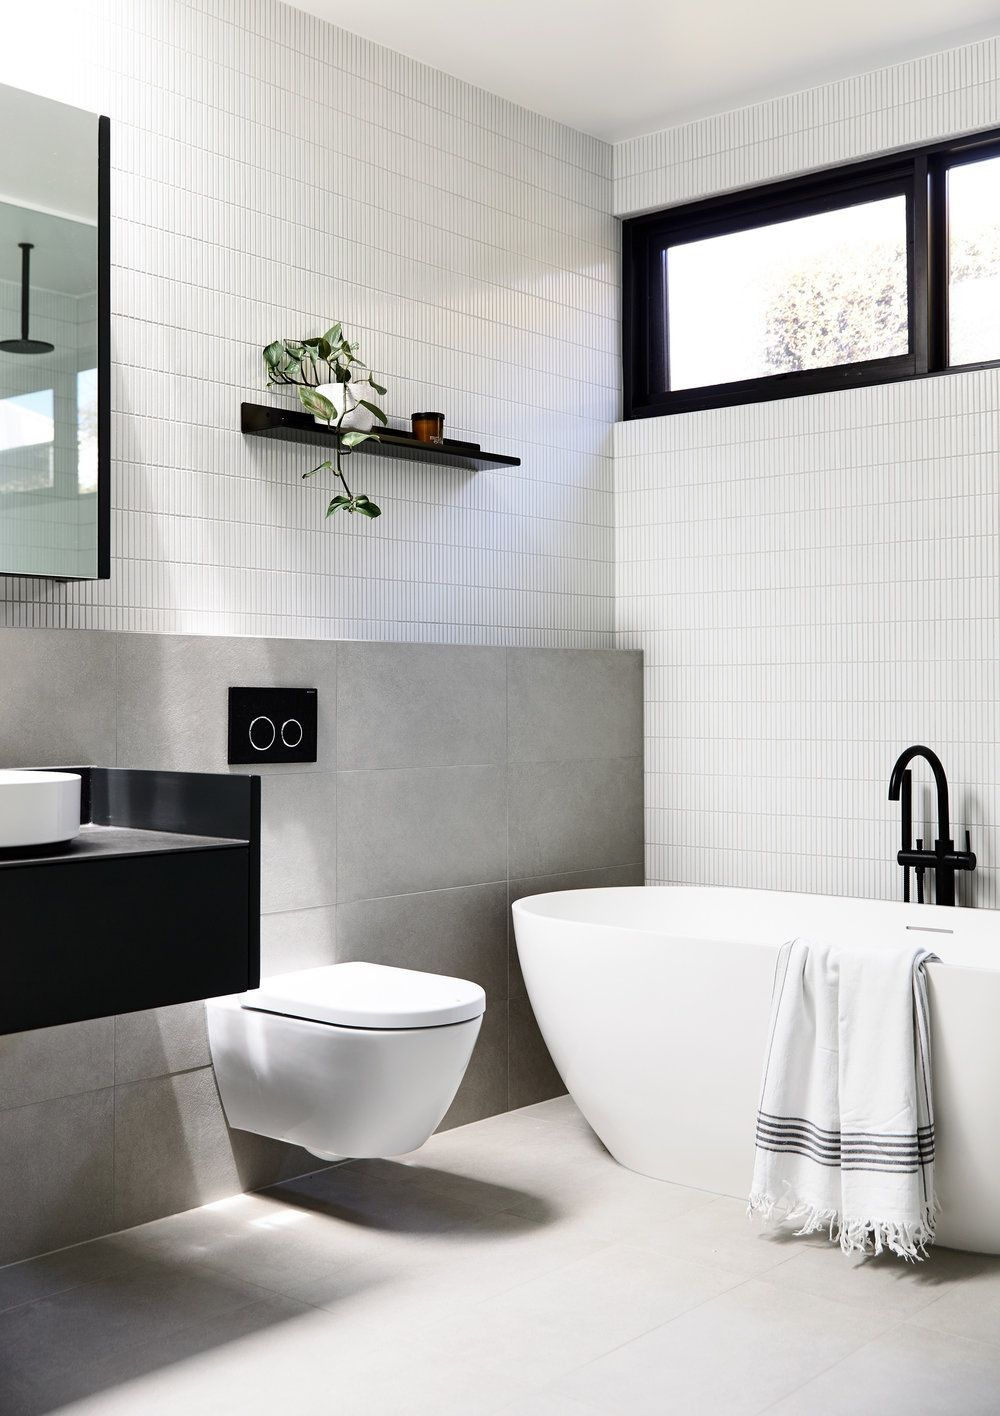 Pin On Design And Home Decor Bathroom